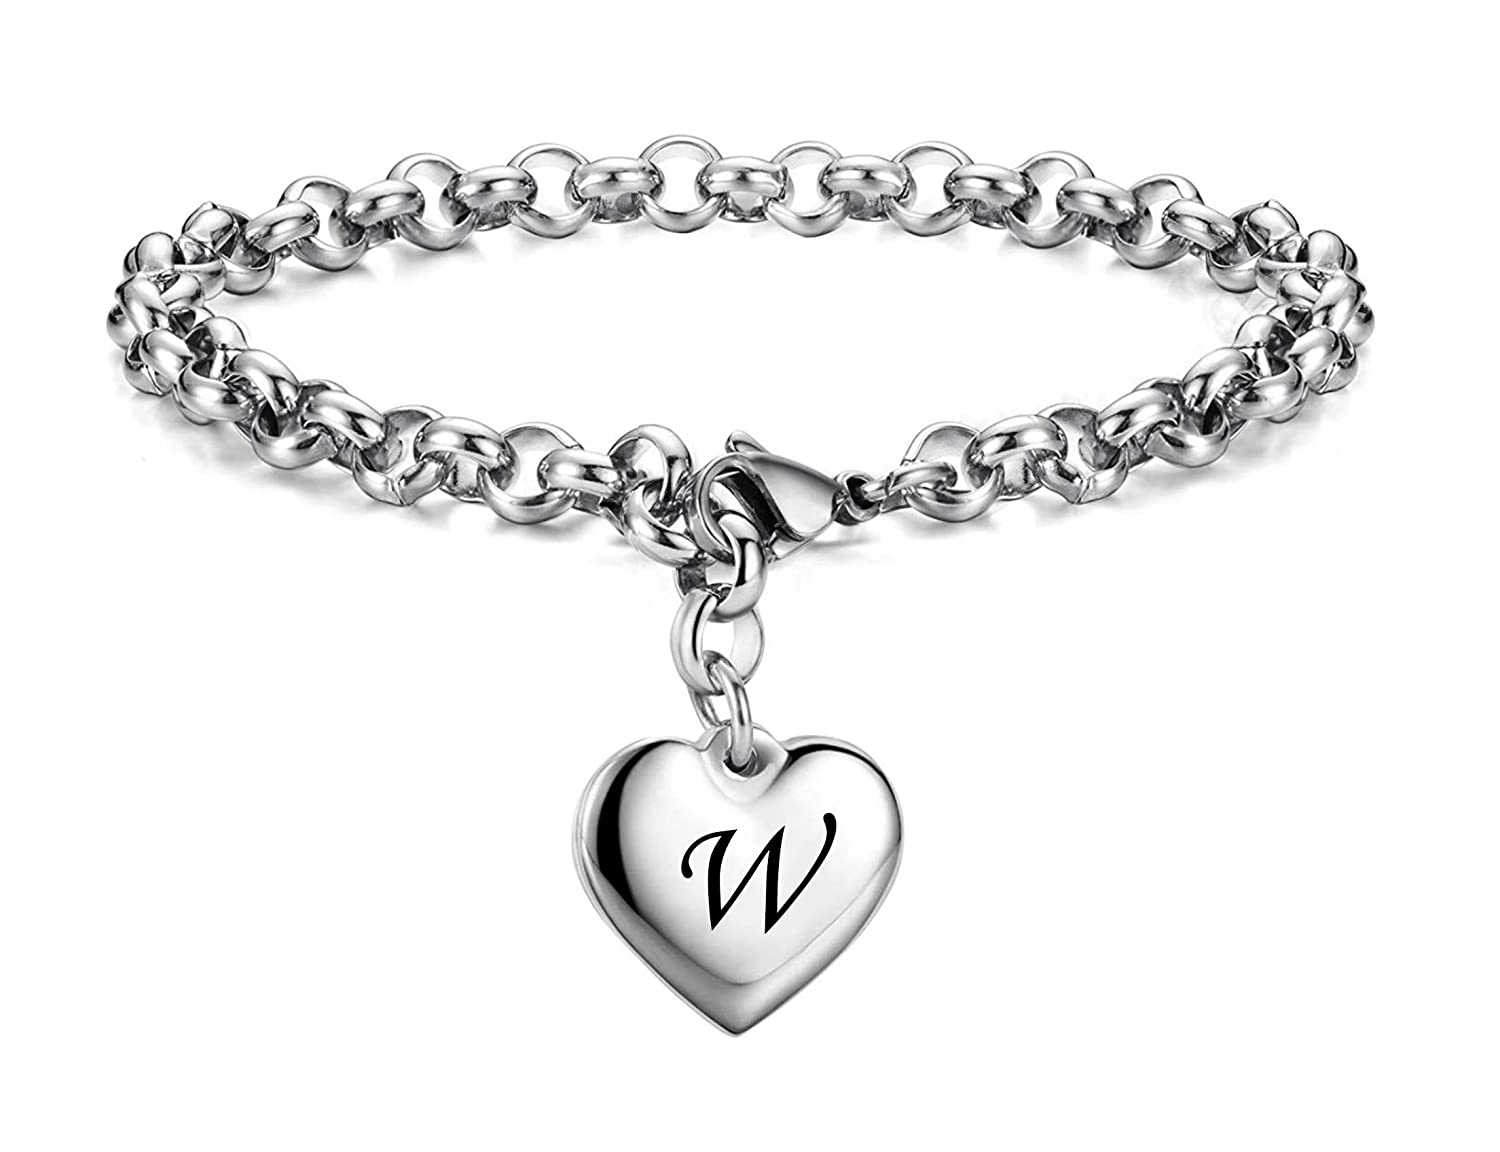 YOYONY Stainless Steel Initial Alphabet 26 Letter Charms Chain Link Bracelet,Gifts for Women//Girls//Friends.